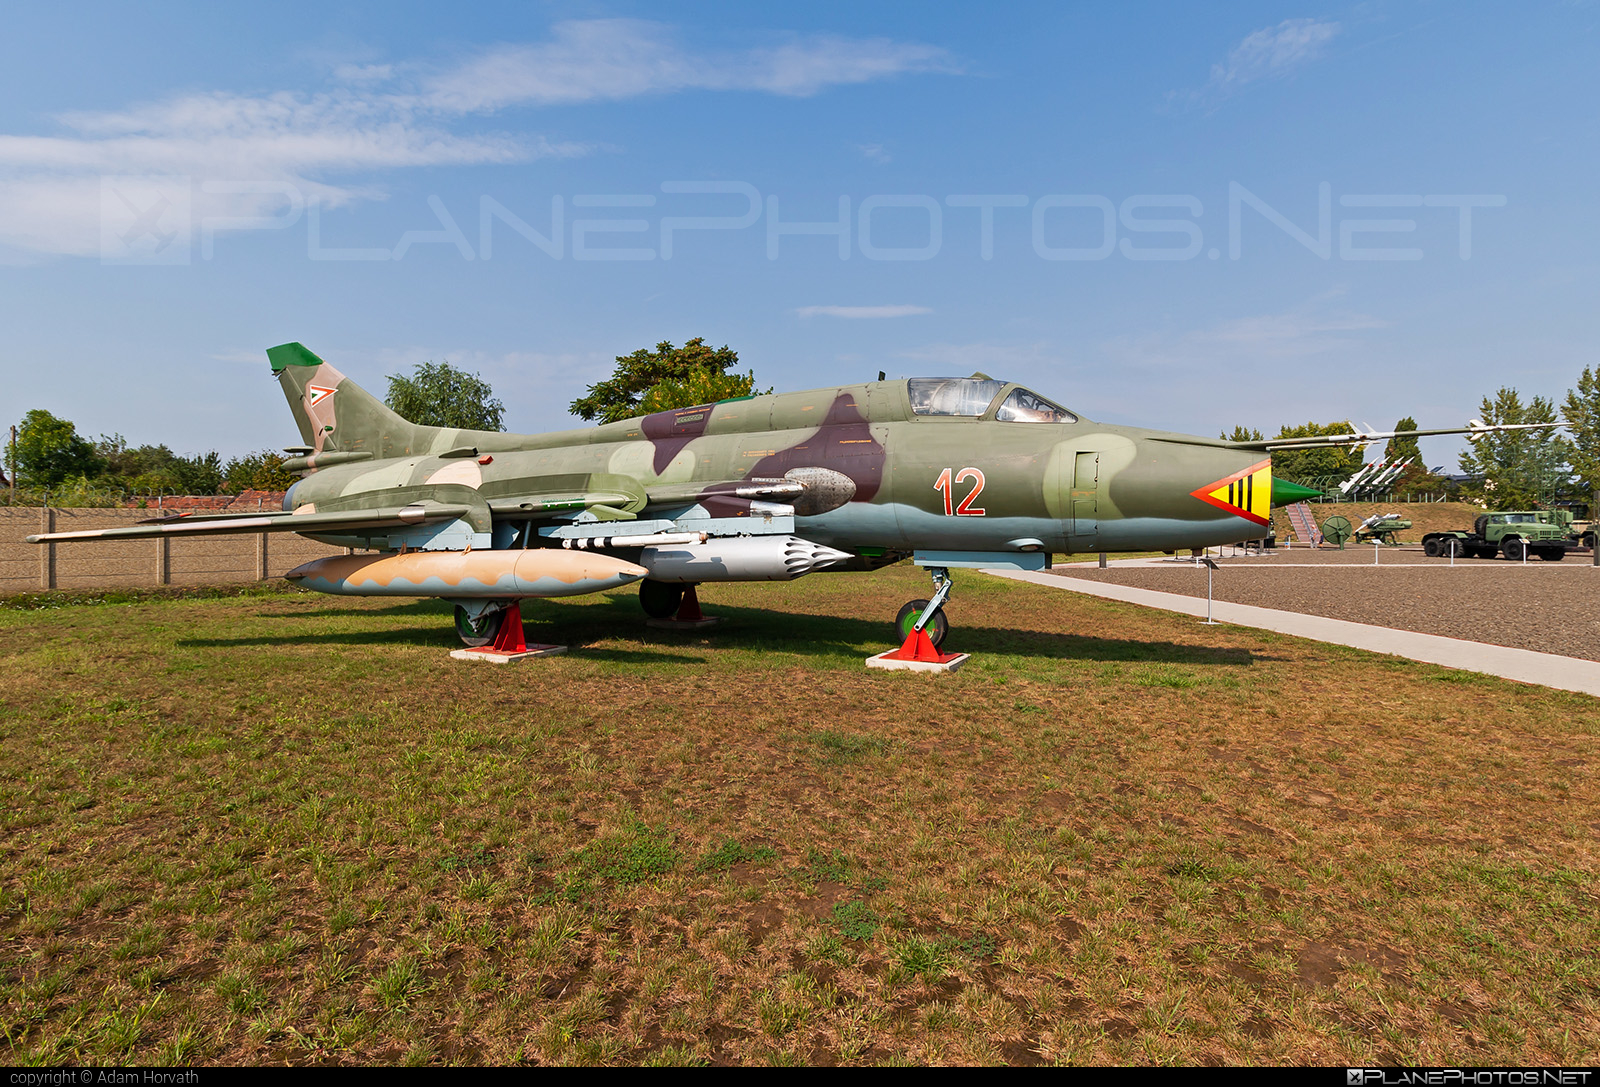 Sukhoi Su-22M3 - 12 operated by Magyar Légierő (Hungarian Air Force) #hungarianairforce #magyarlegiero #sukhoi